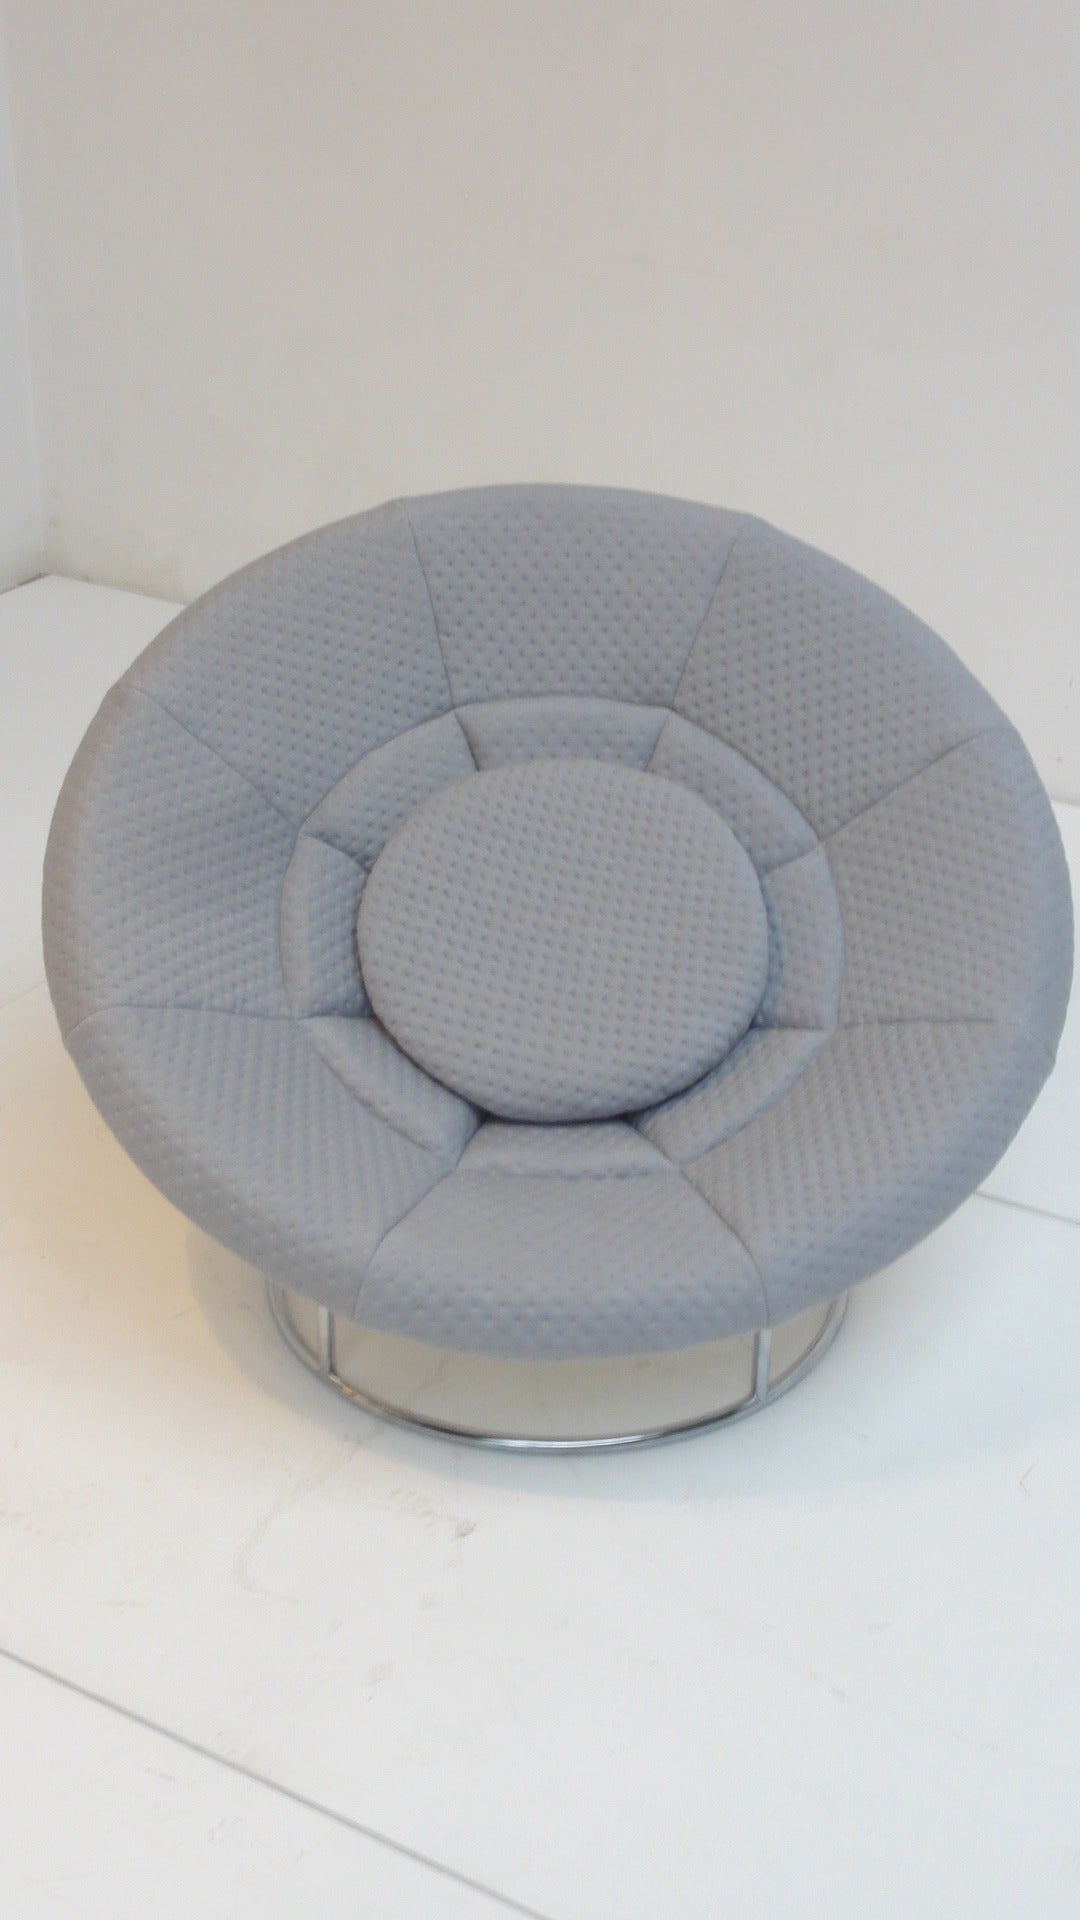 birds nest chair big bean bag chairs canada 1970s 39bird 39s 39 verner panton style lounge for